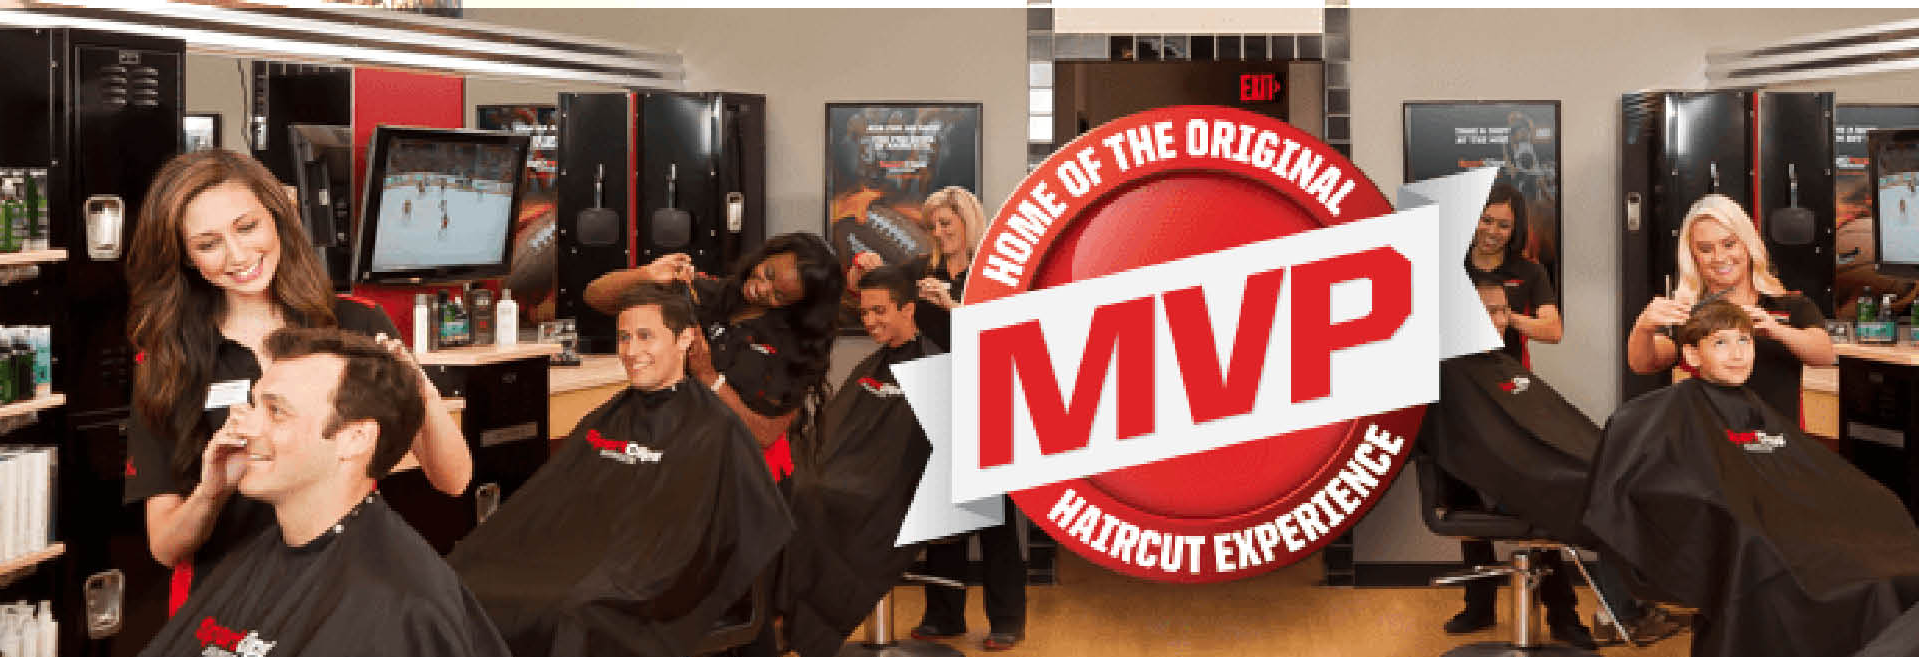 Sport clips Mens Haircuts in New Berlin, WI Banner